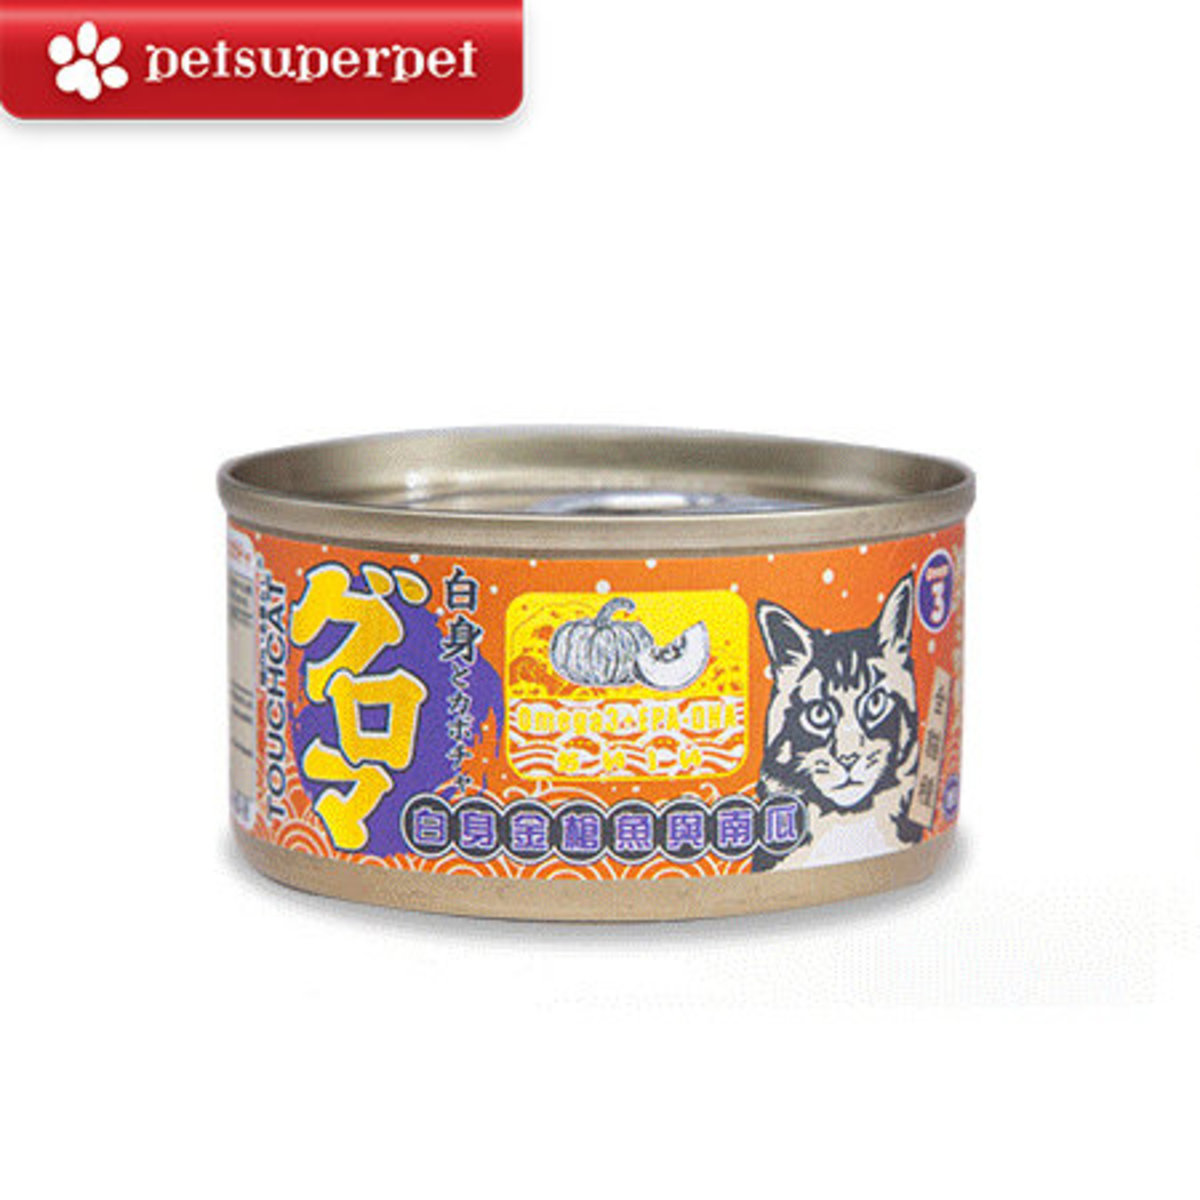 Japan Tuna & Pumpkin Cat Can (Parallel Import Goods) - 85g